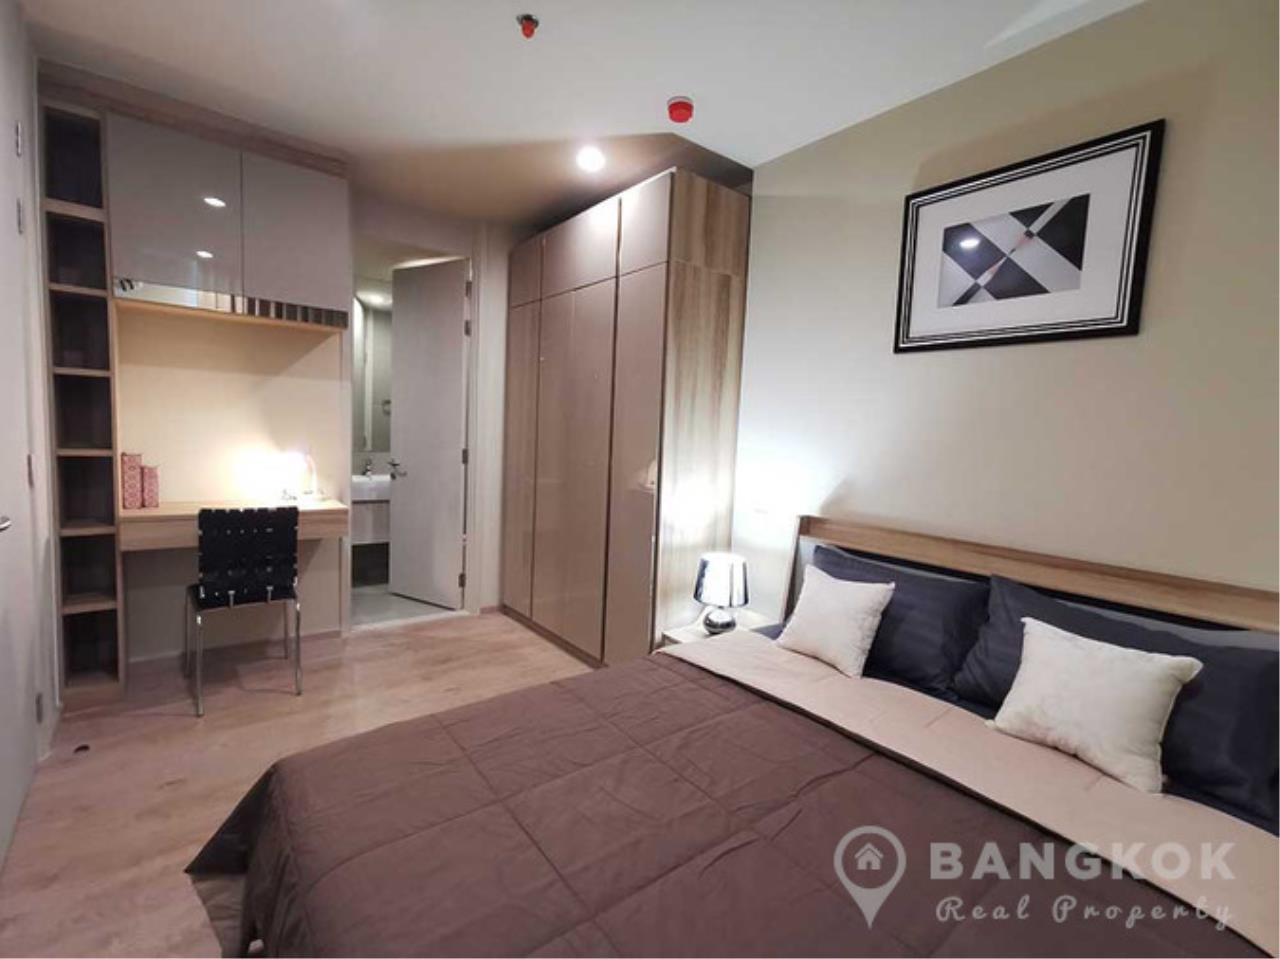 Bangkok Real Property Agency's Noble Recole Sukhumvit 19 | Brand New Modern 1 Bed near NIST School 5